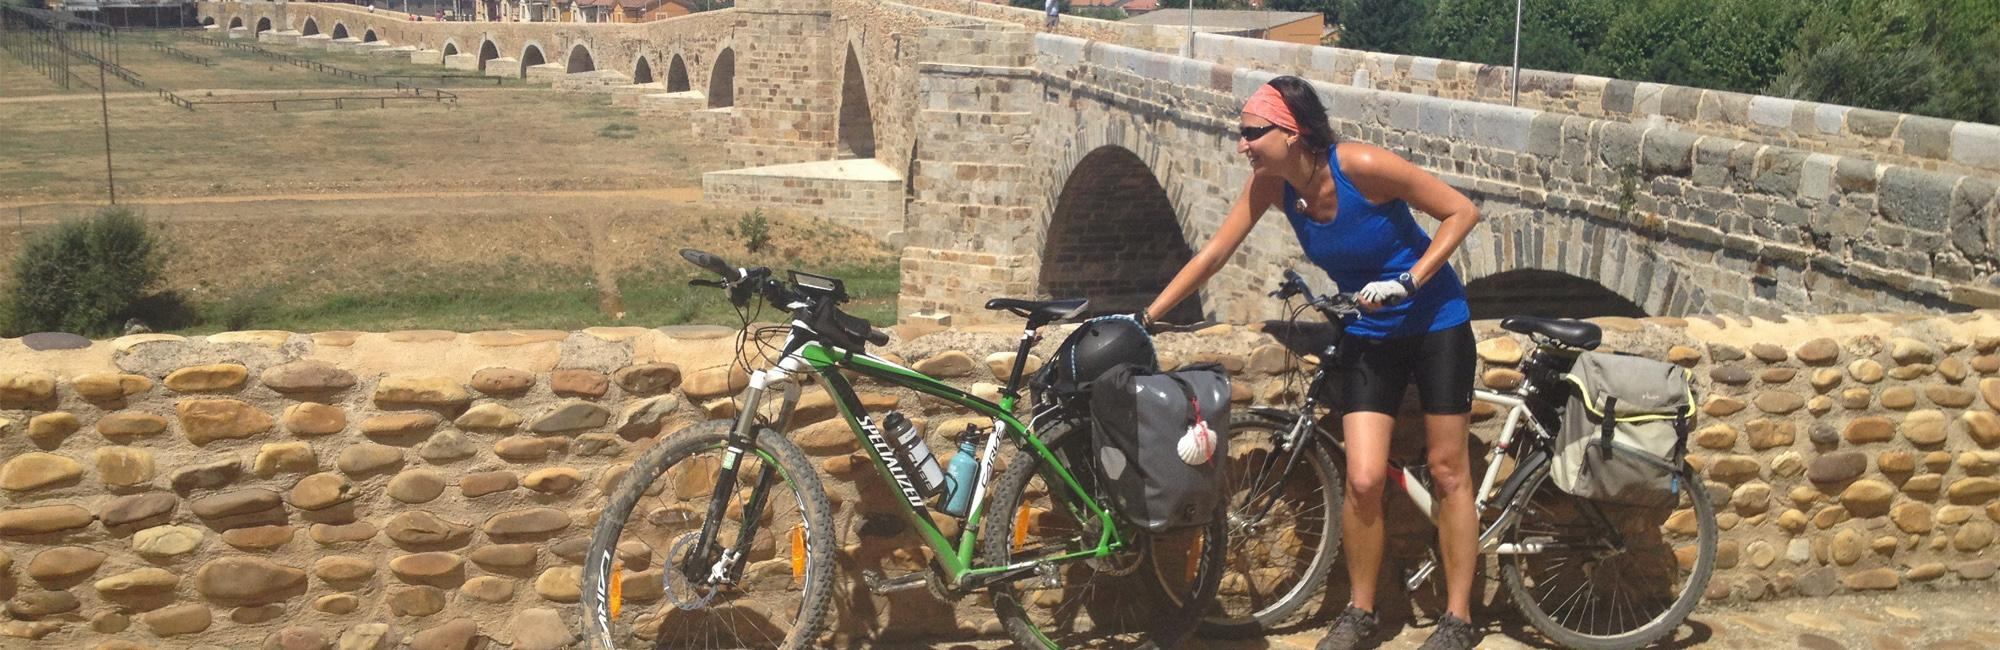 Pilgrim cycling in Way of Saint James